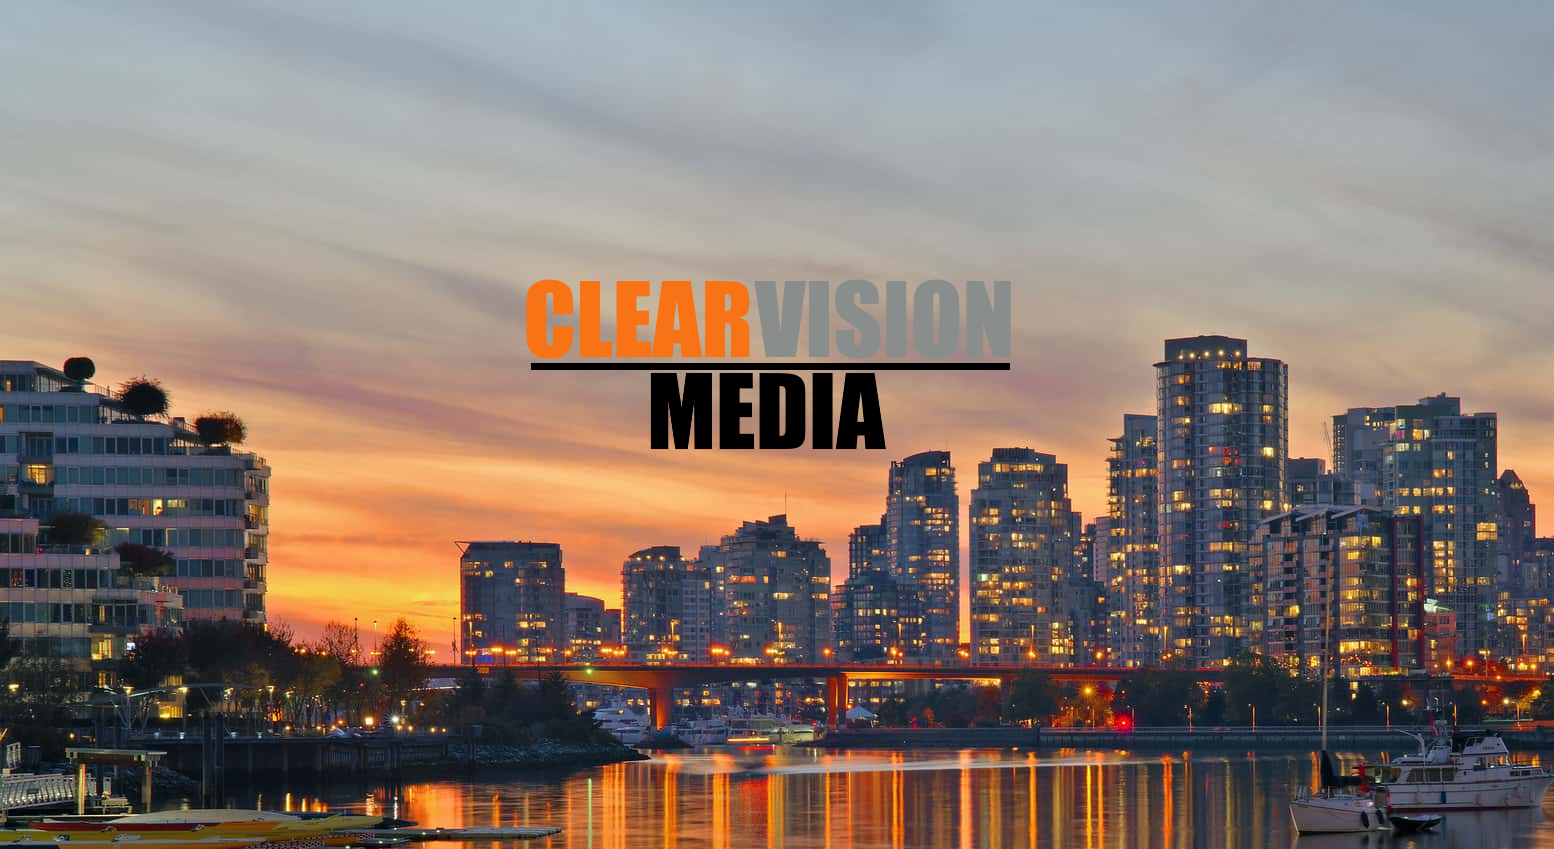 ClearVision Media